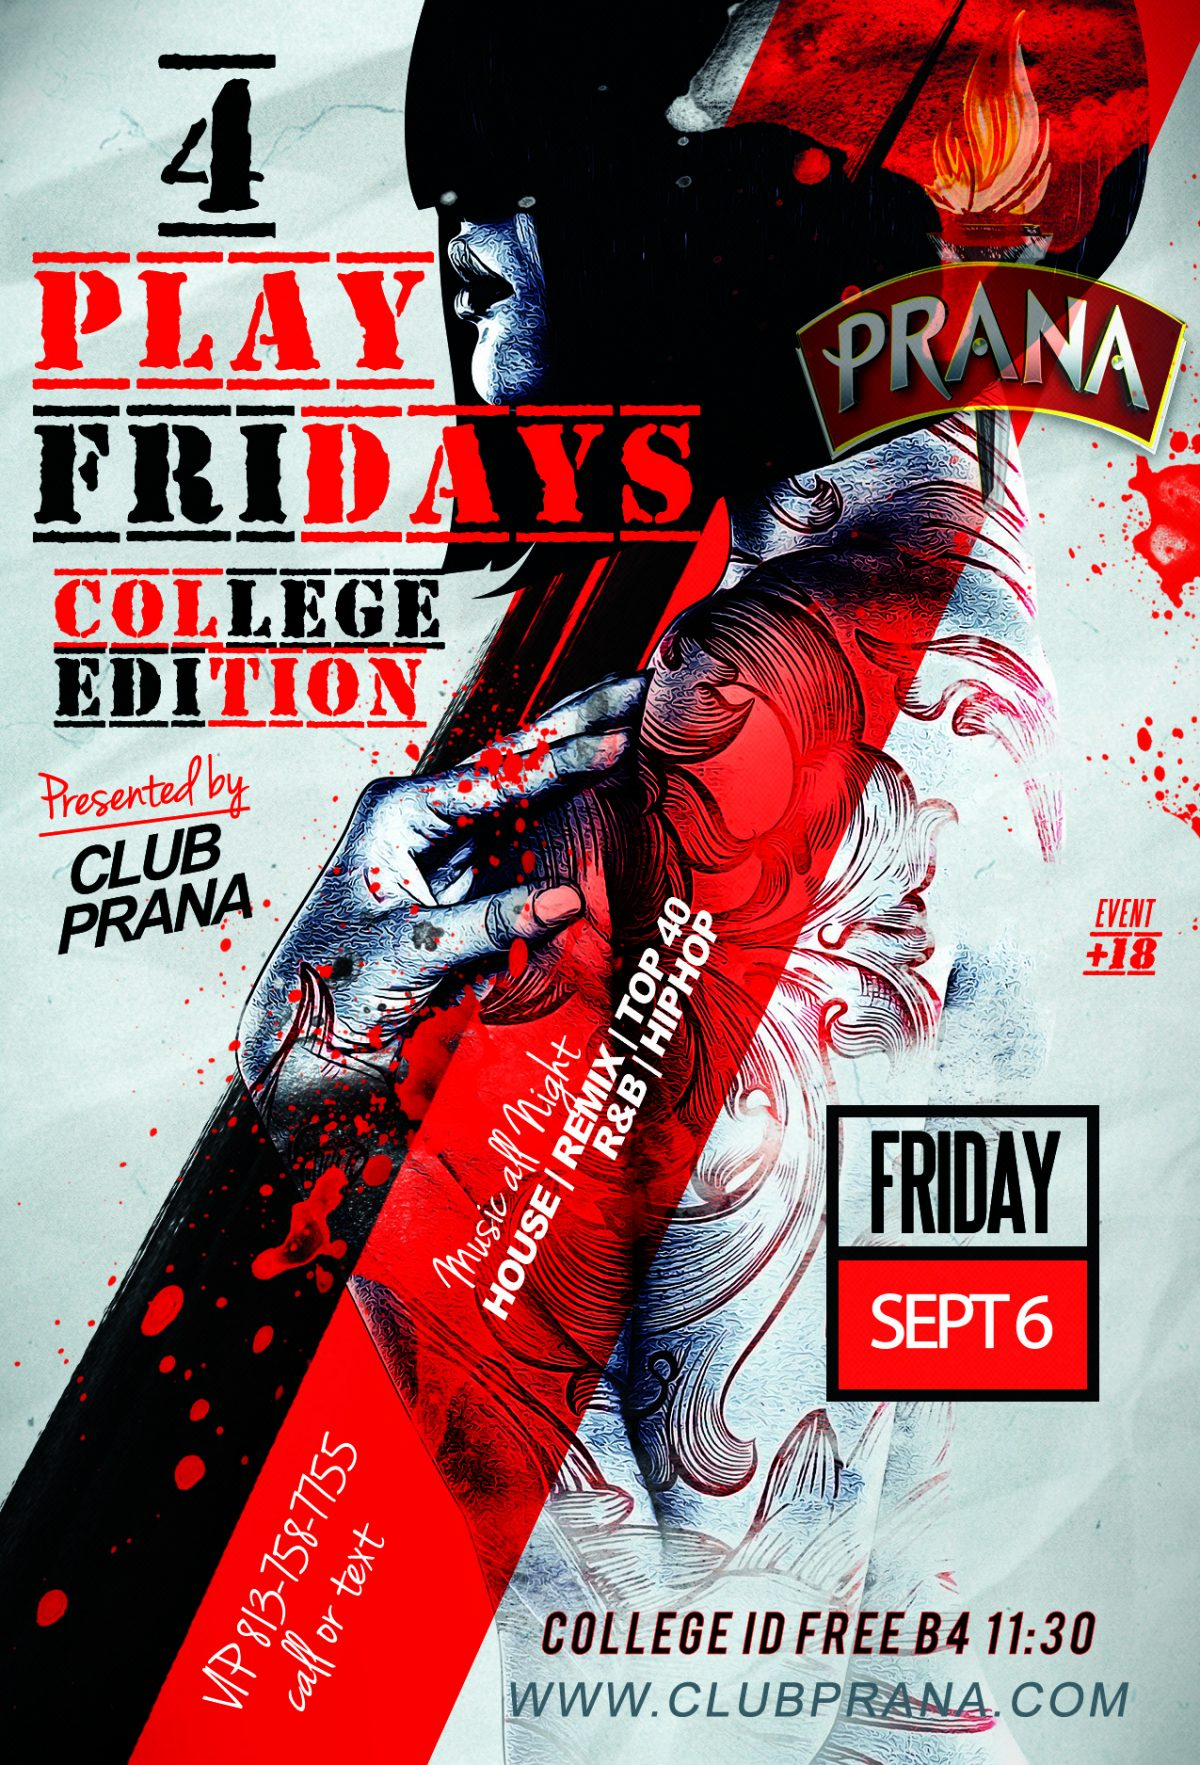 4Play Fridays College Edition